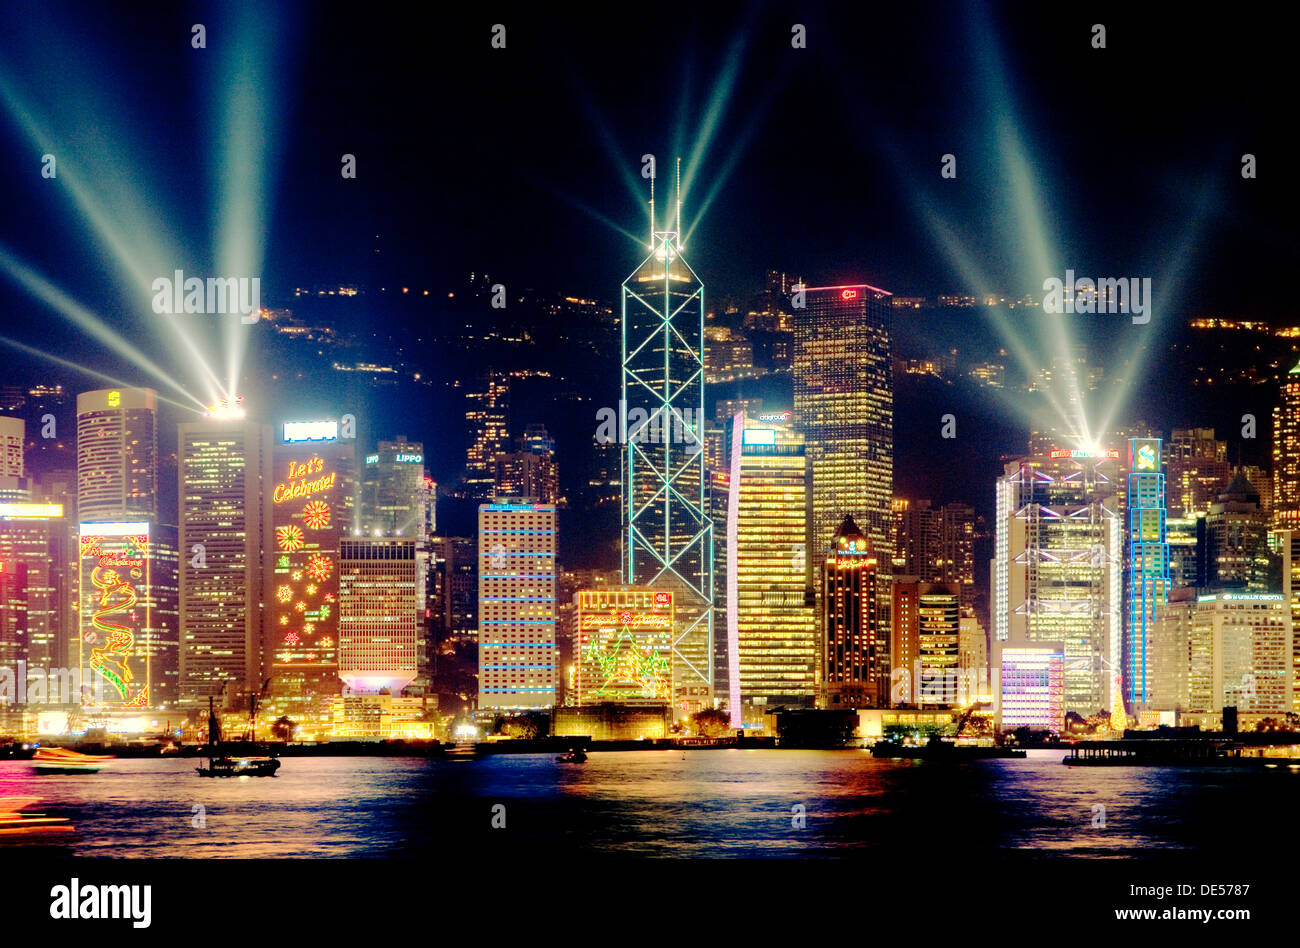 Hong Kong Island China city skyline of Central District at night with laser light show seen across Victoria Harbour from Kowloon - Stock Image